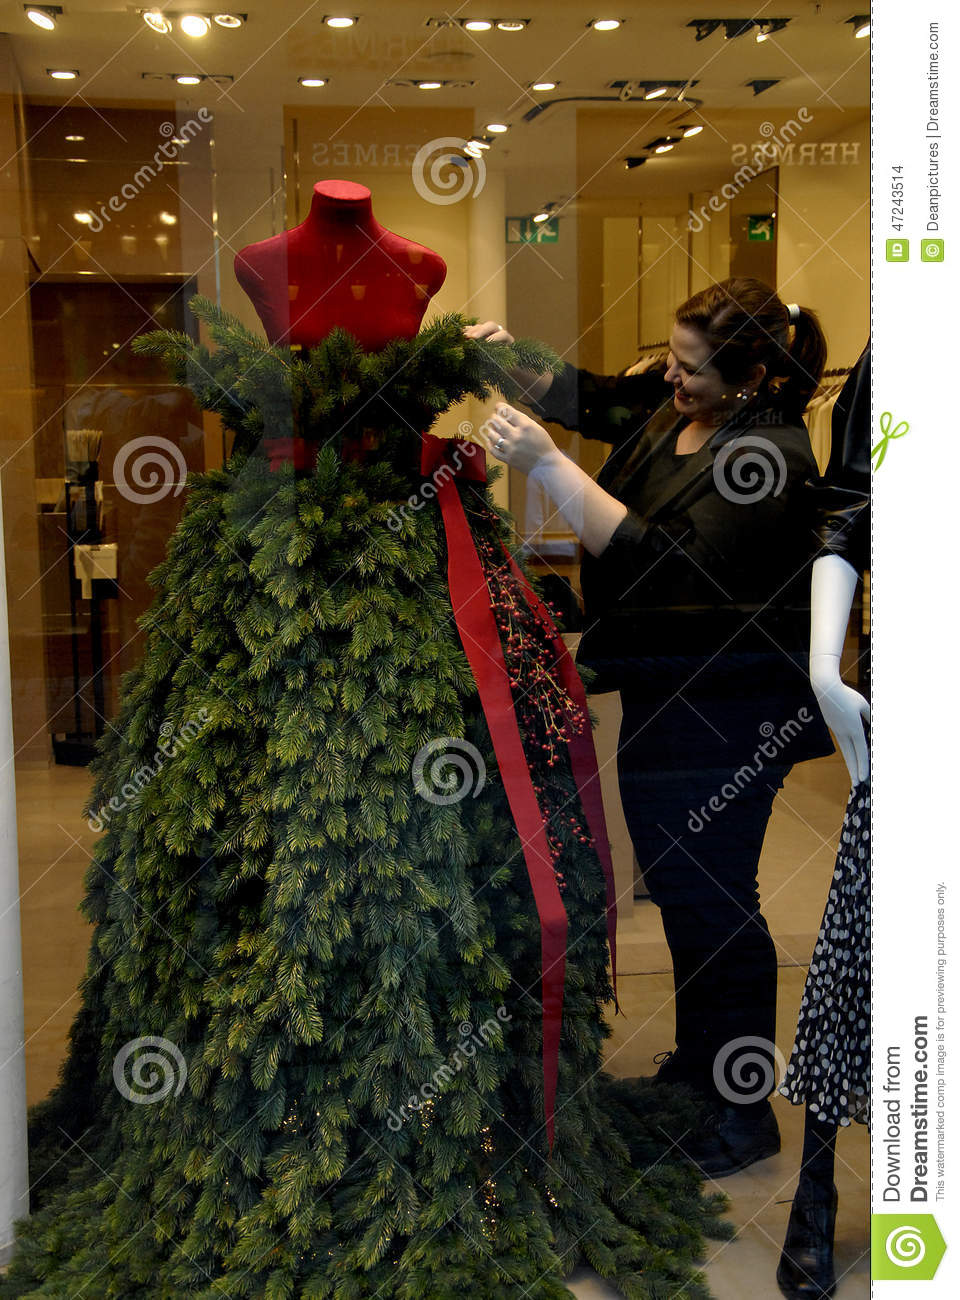 Christmas Tree Mannequin Dress.Mannequin Dress As Christmas Tree Editorial Stock Image